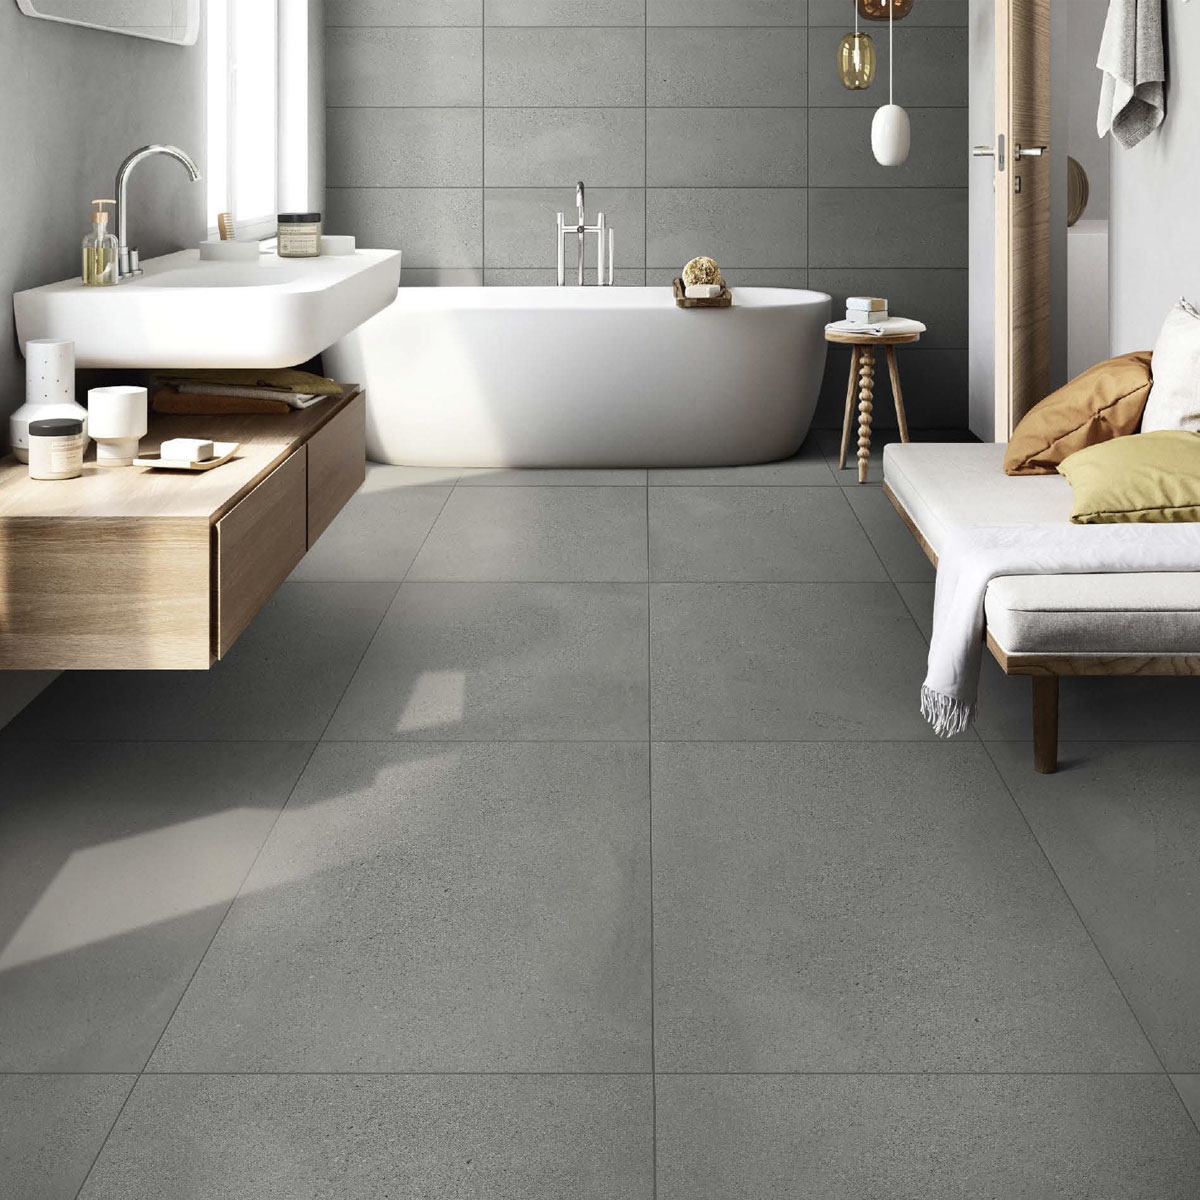 Moonstone - Pumice - Concrete Look Tiles - 300x600mm - Stone3